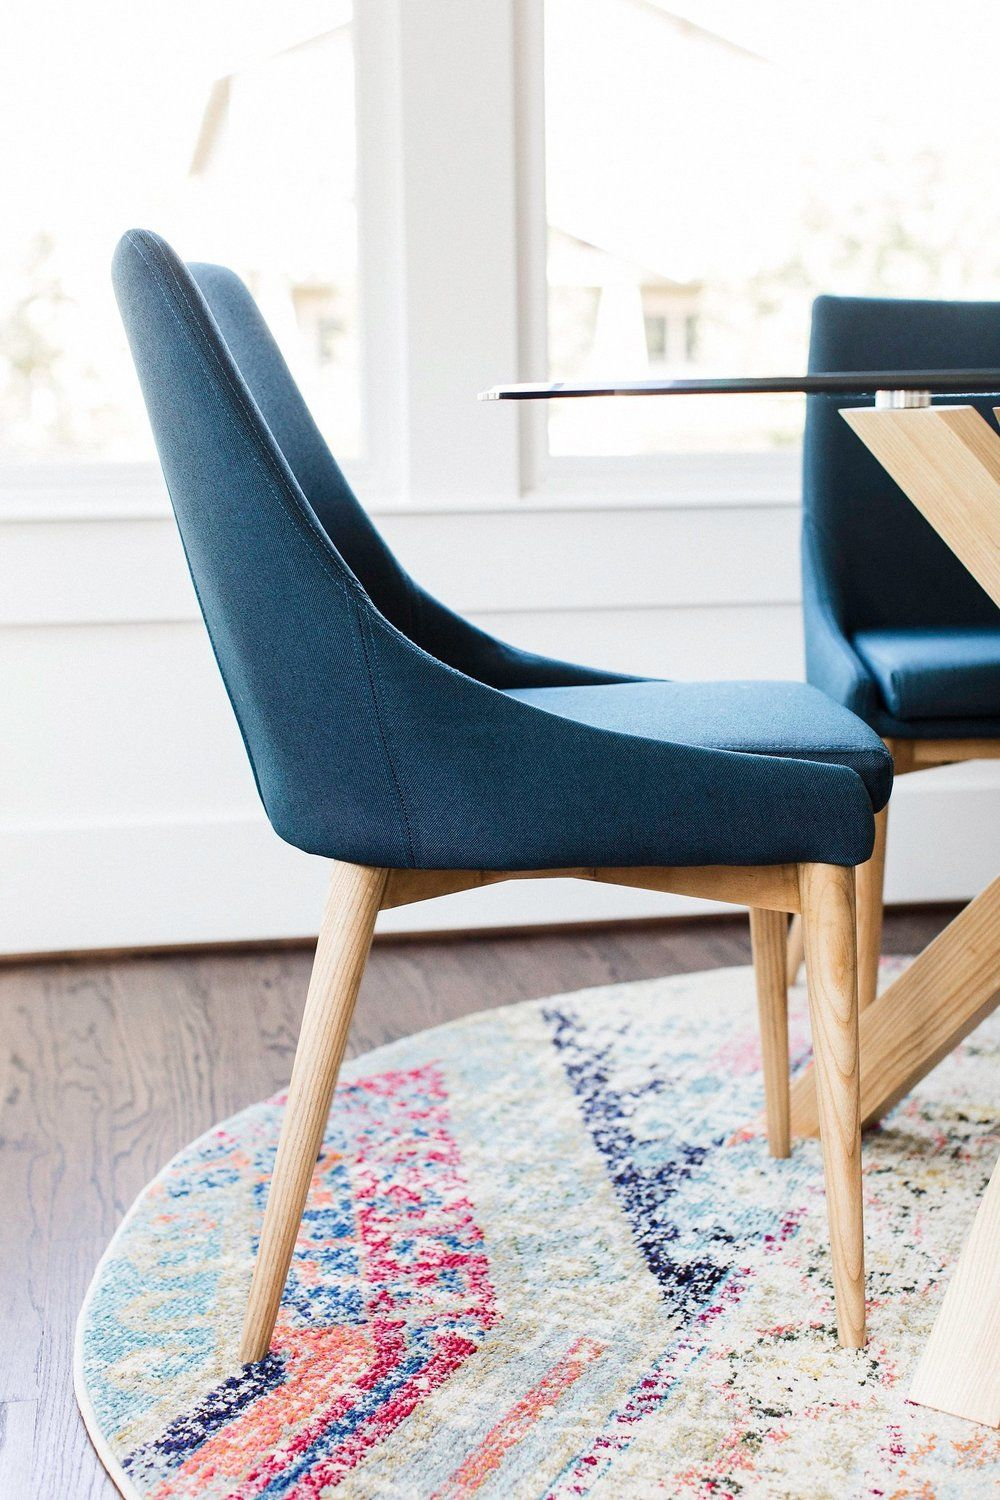 Edloe Finch Jessica Contemporary Dining Chair In Blue Set Of 2 Ef Zx Dc005b With Images Dining Room Chairs Modern Contemporary Dining Chairs Dining Chairs